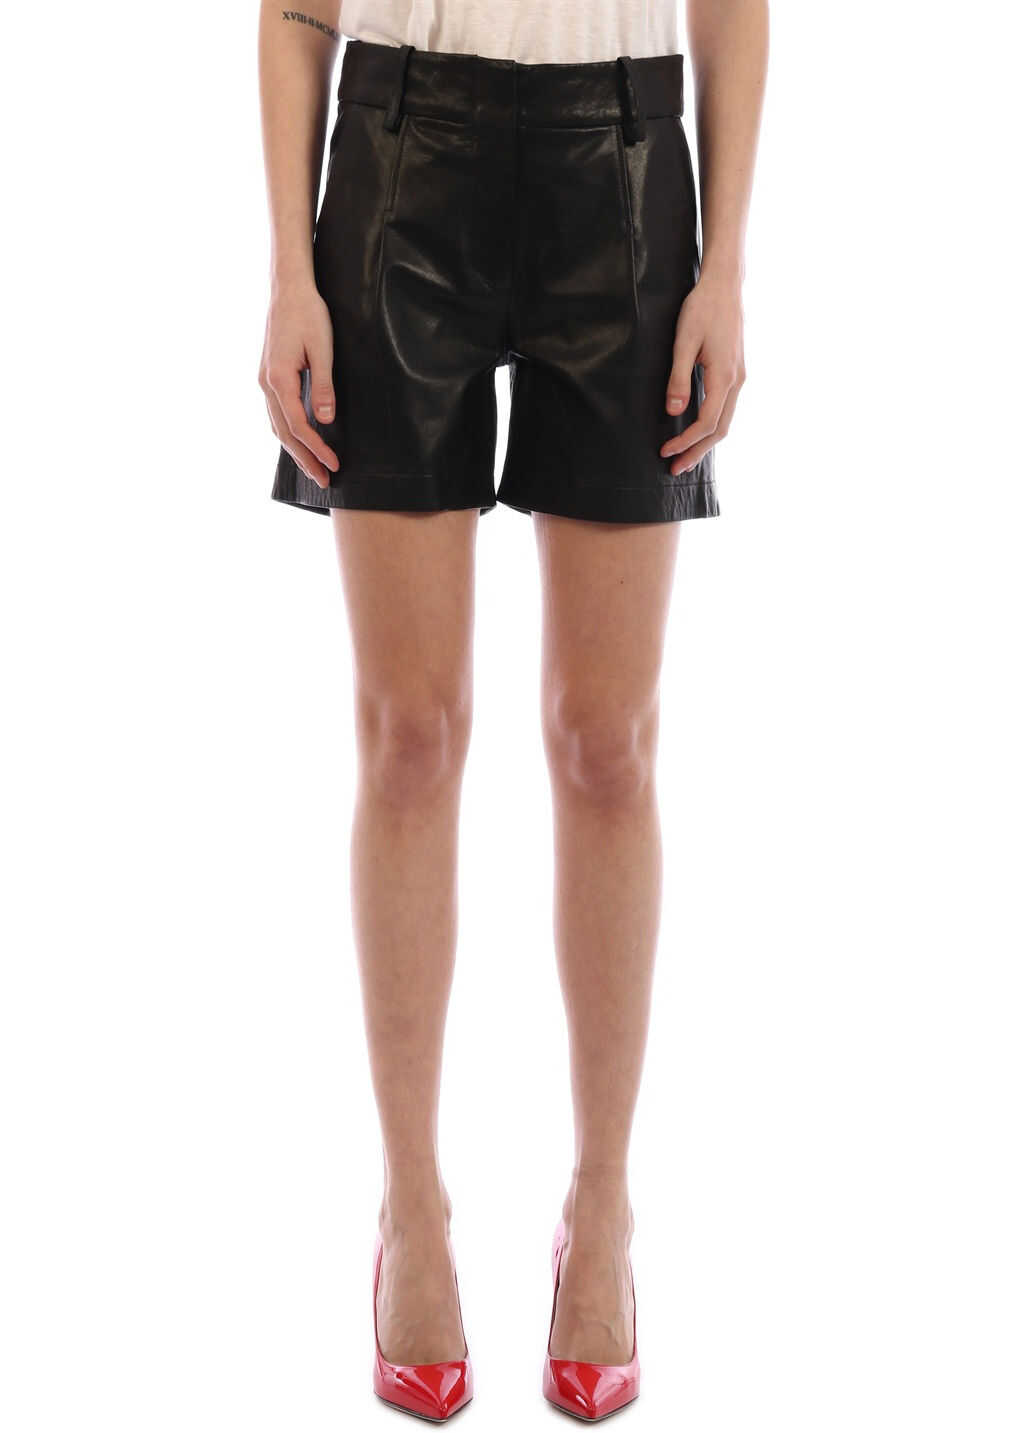 ARMA Leather Shorts Black